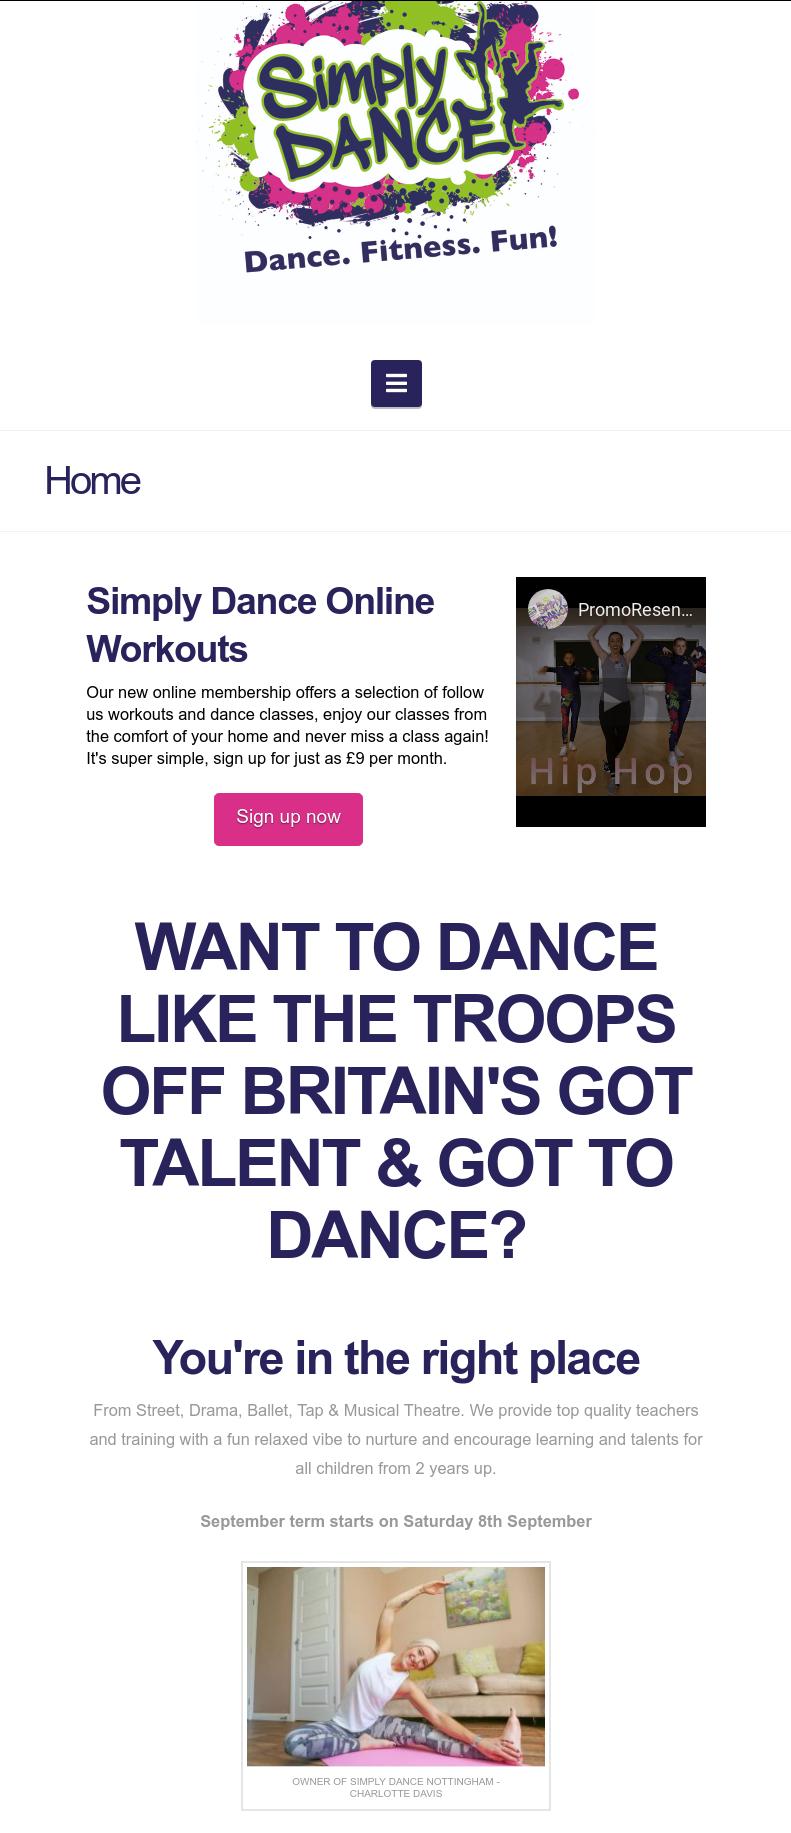 Screen shot of the front page of the Simply Dance Nottingham website